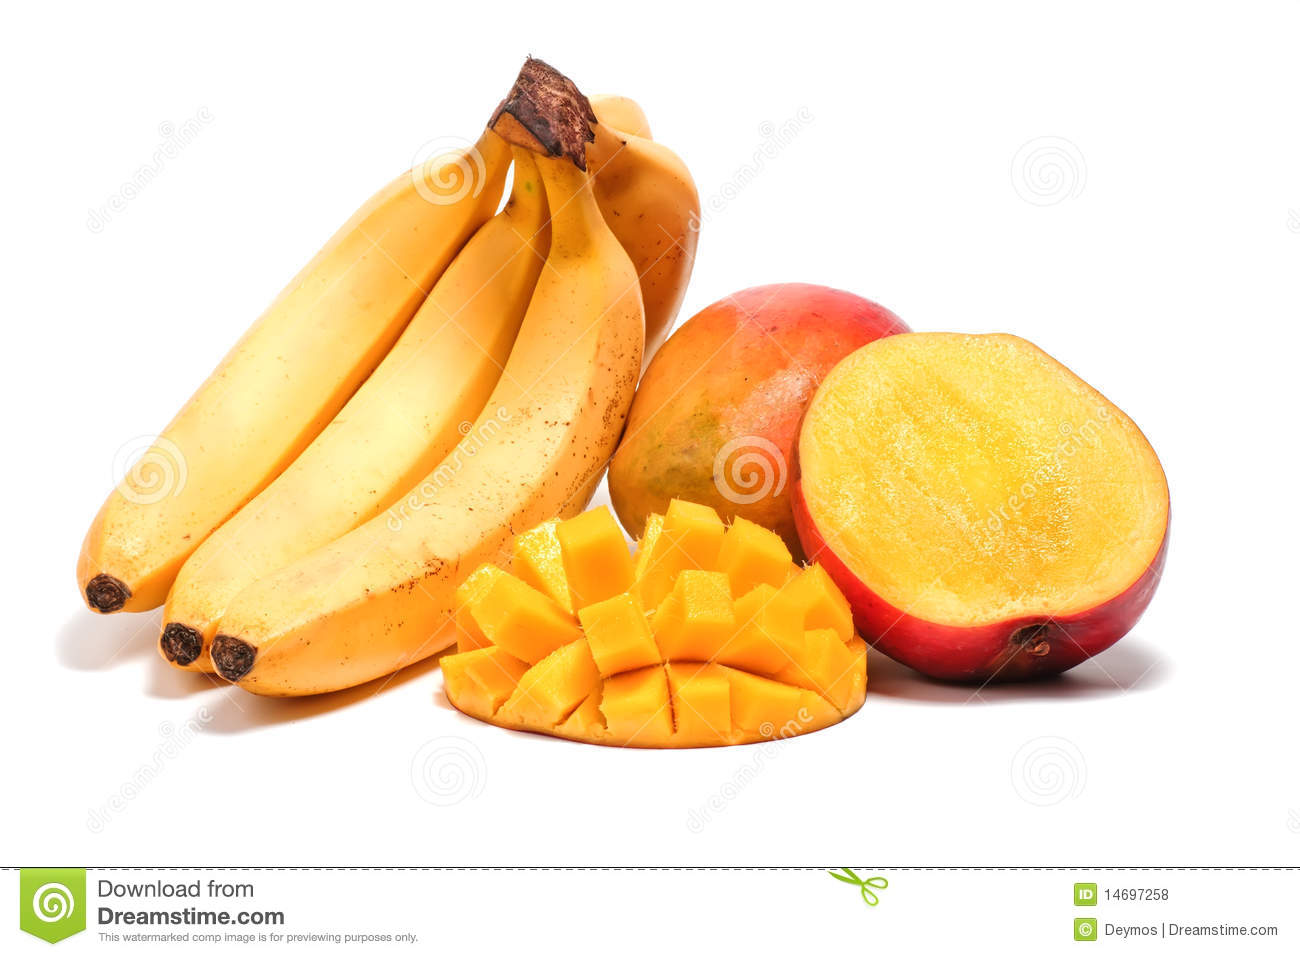 how to cut up a mango video